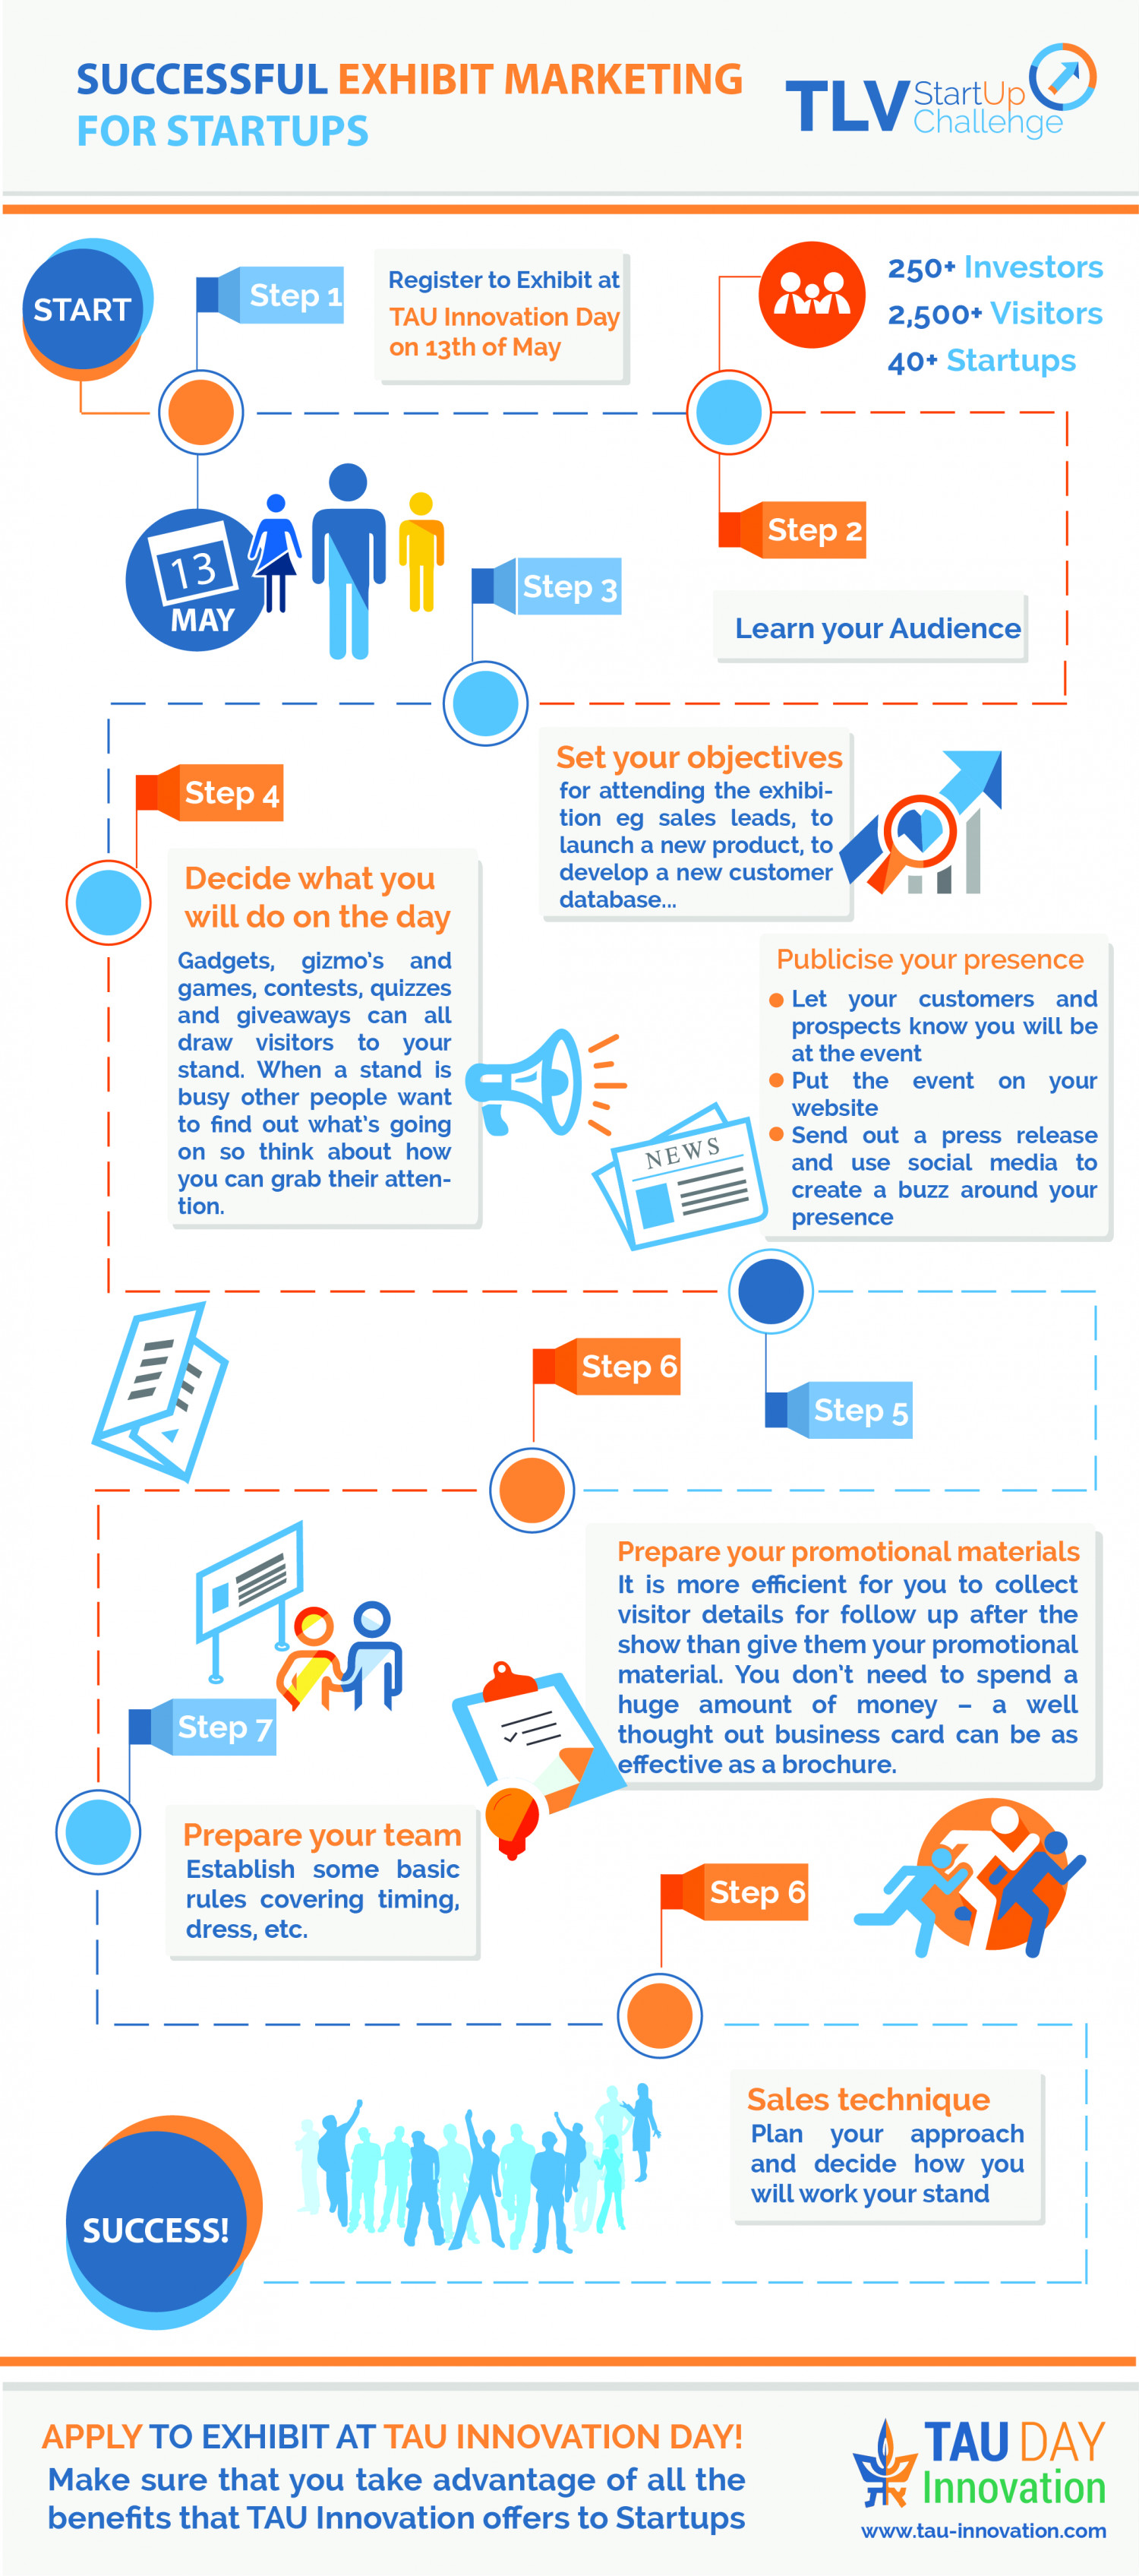 Successful Exhibit Marketing for Startups Infographic